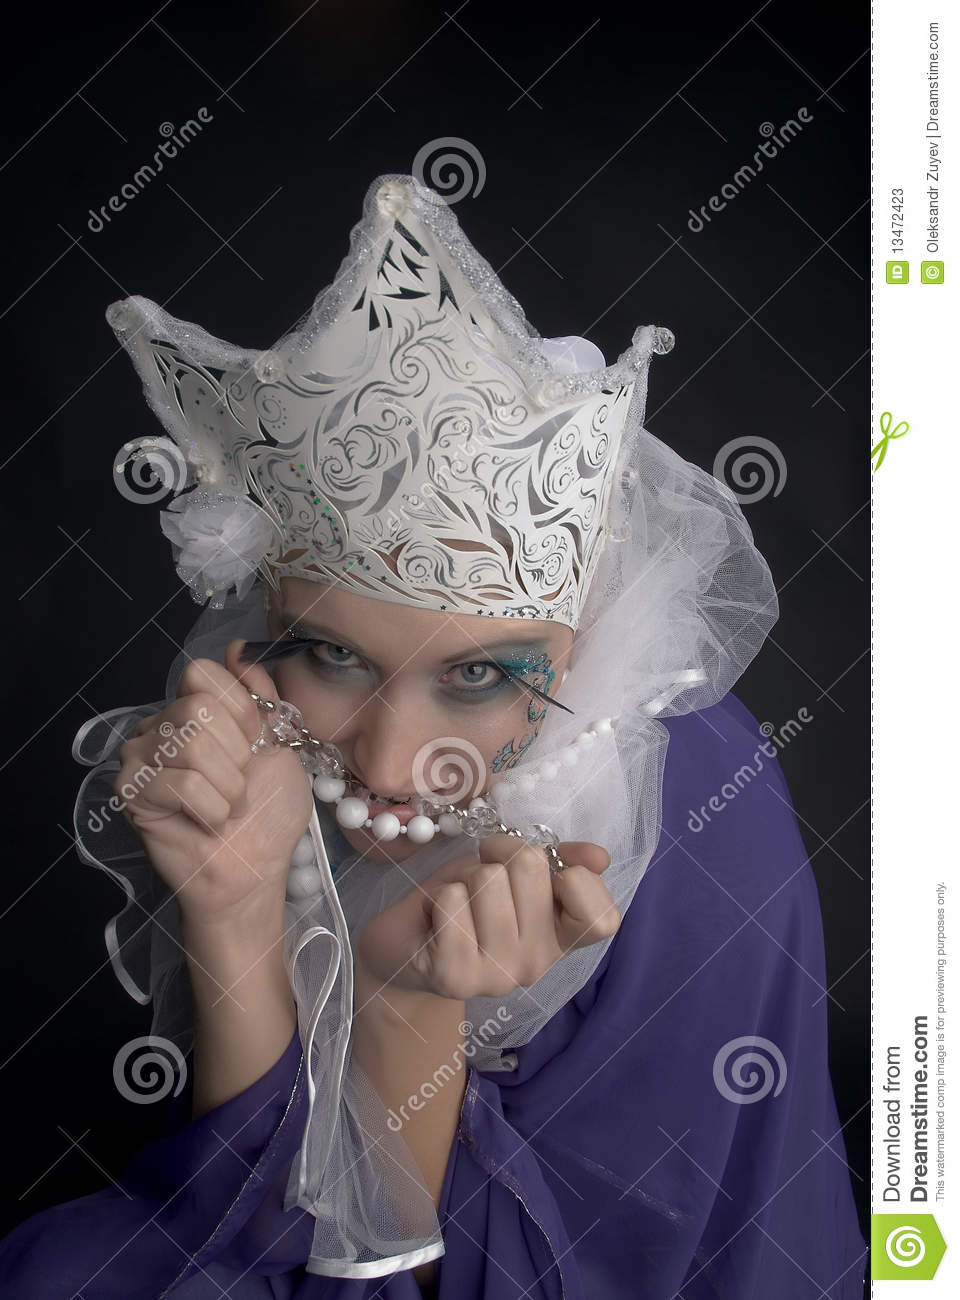 Devil Smile Stock Photos - Image: 13472423